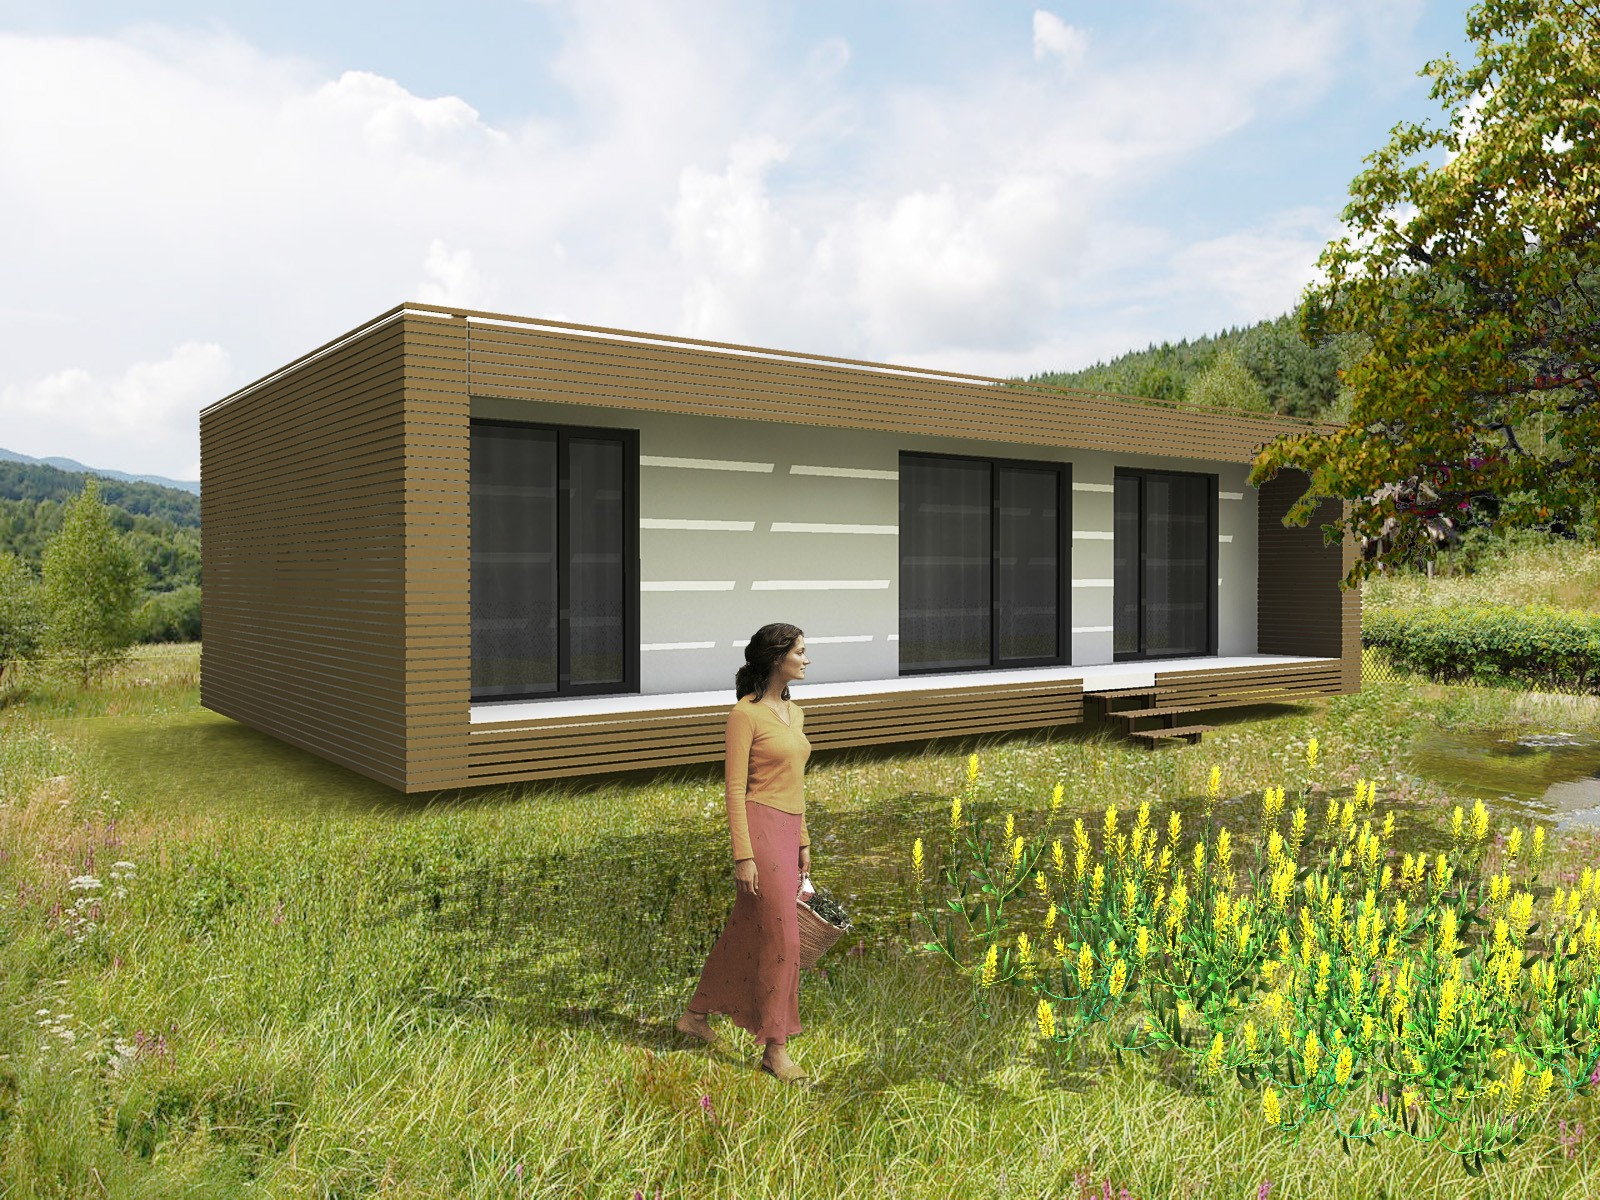 Modular Housing Predicted to Be Top